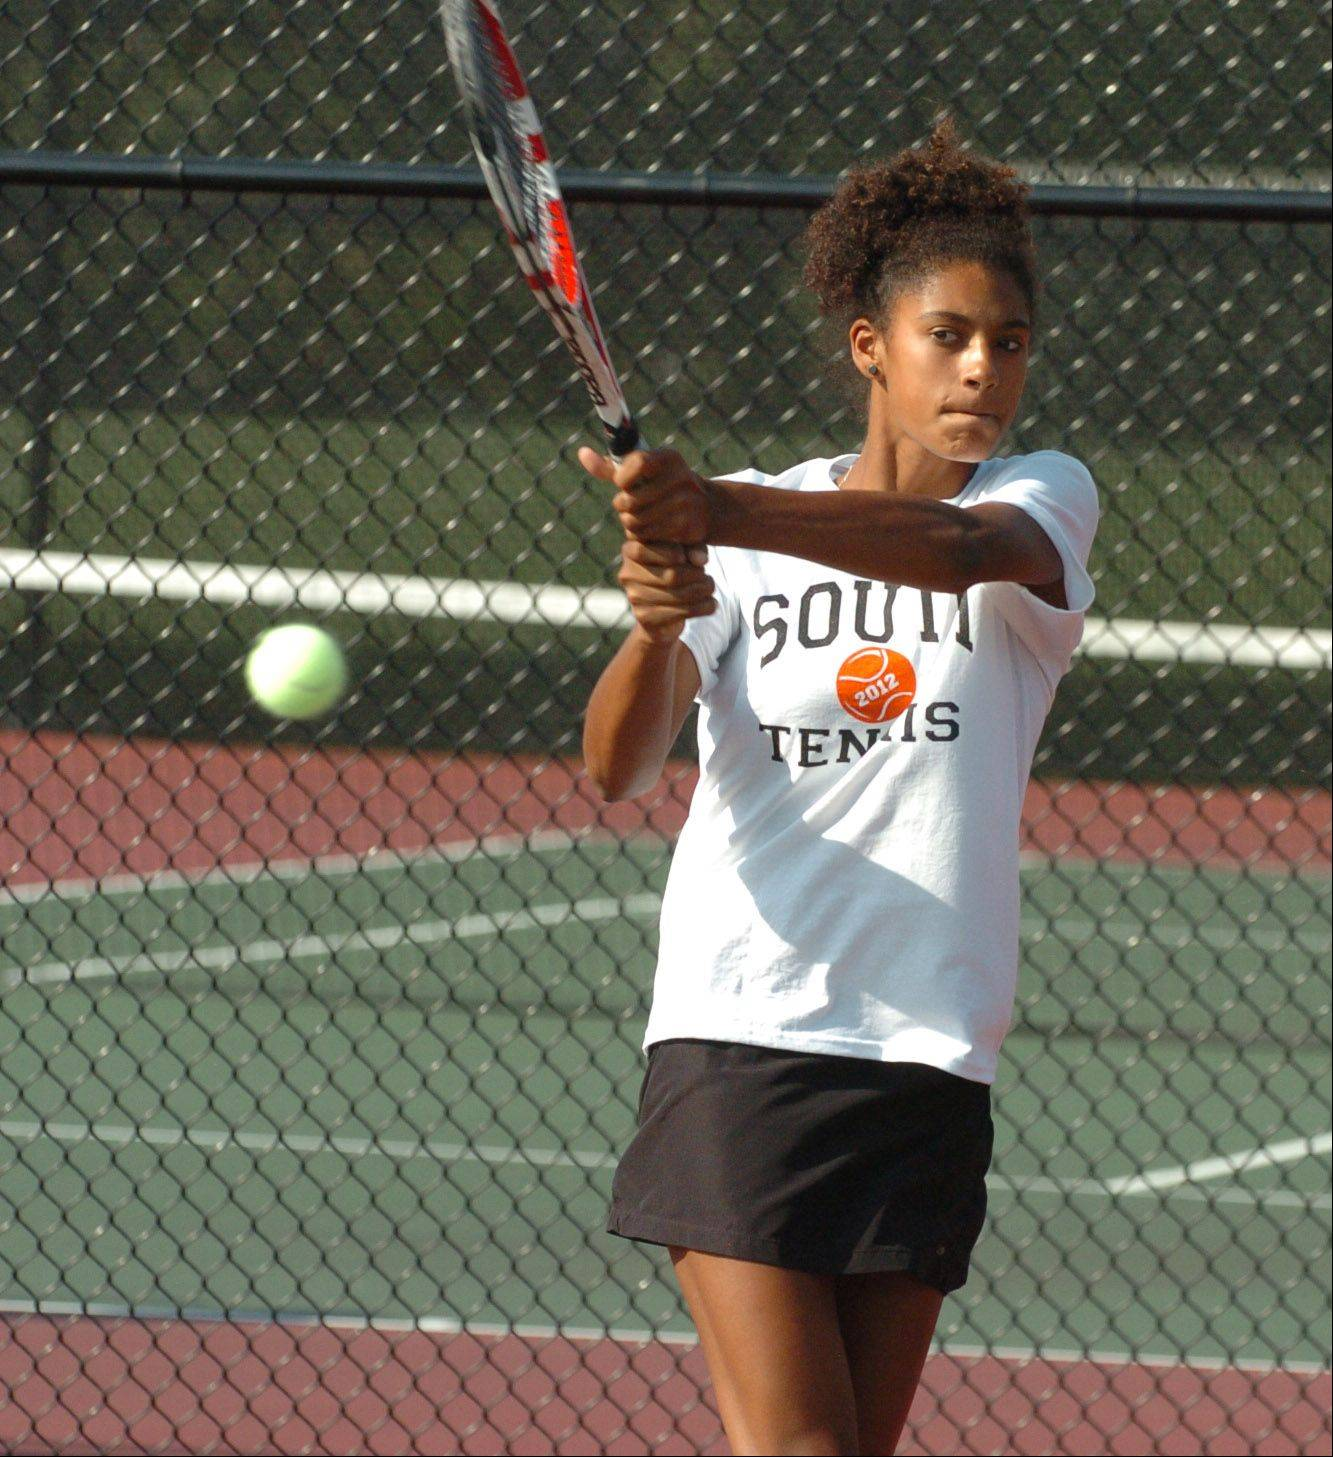 Wheaton Warrenville South tennis player Keisha Clousing signed Wednesday to play at Clemson.